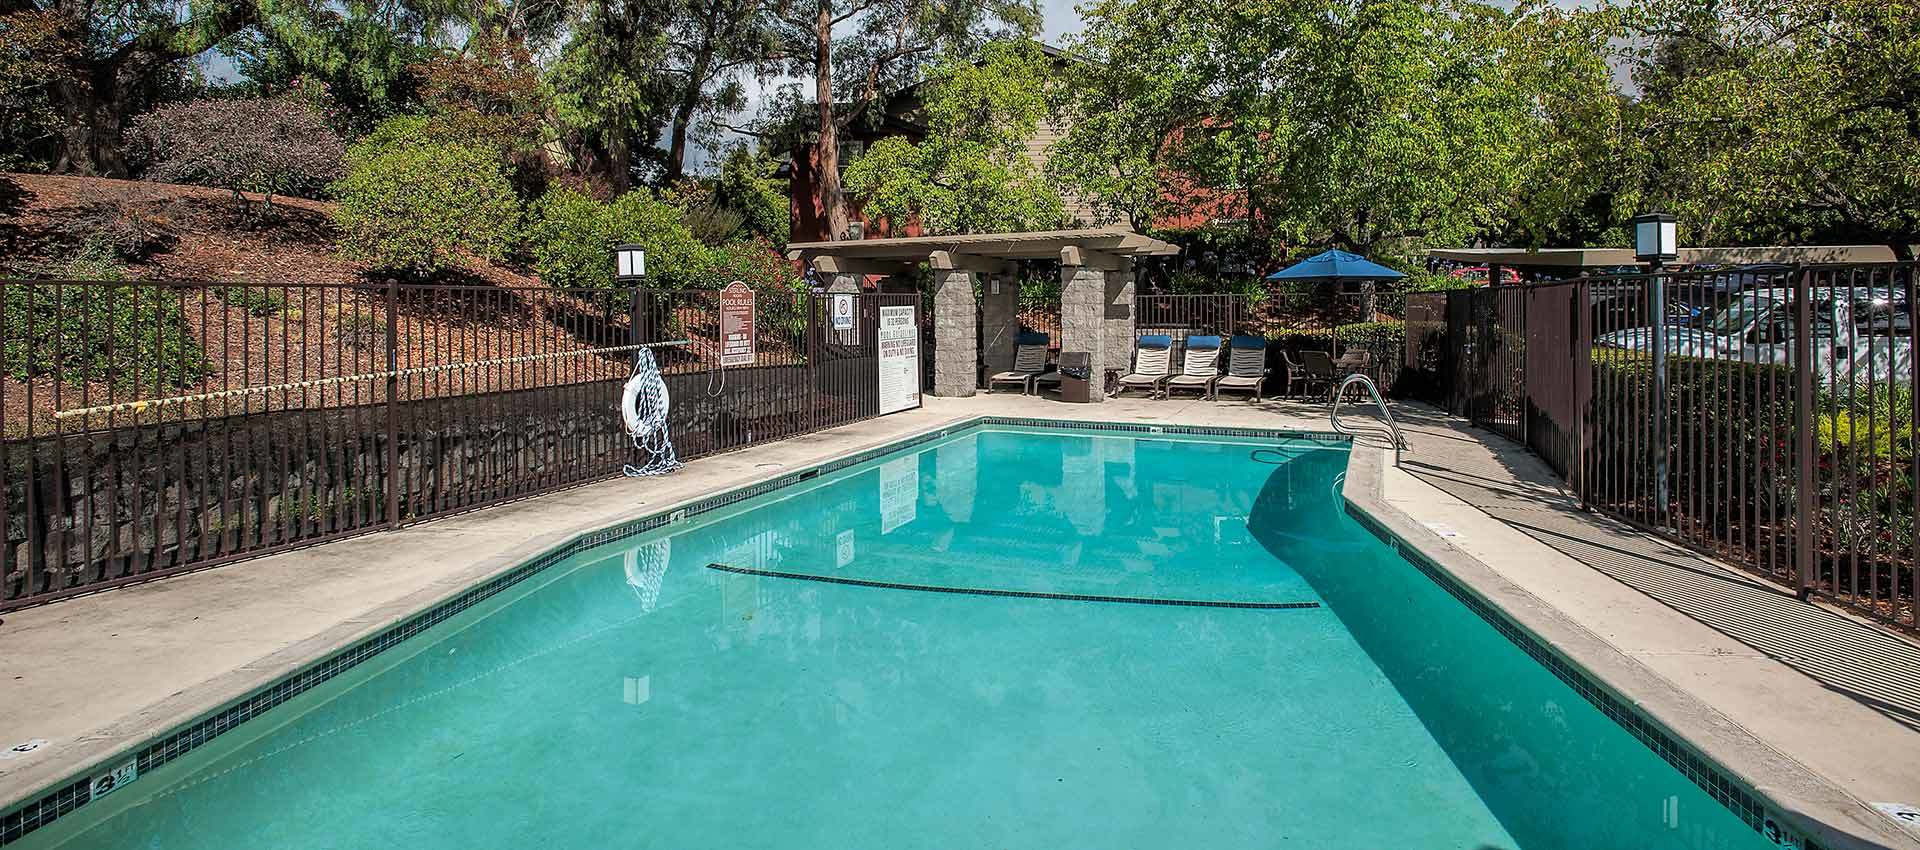 Seating By The Pool at Sterling Heights Apartment Homes in Benicia